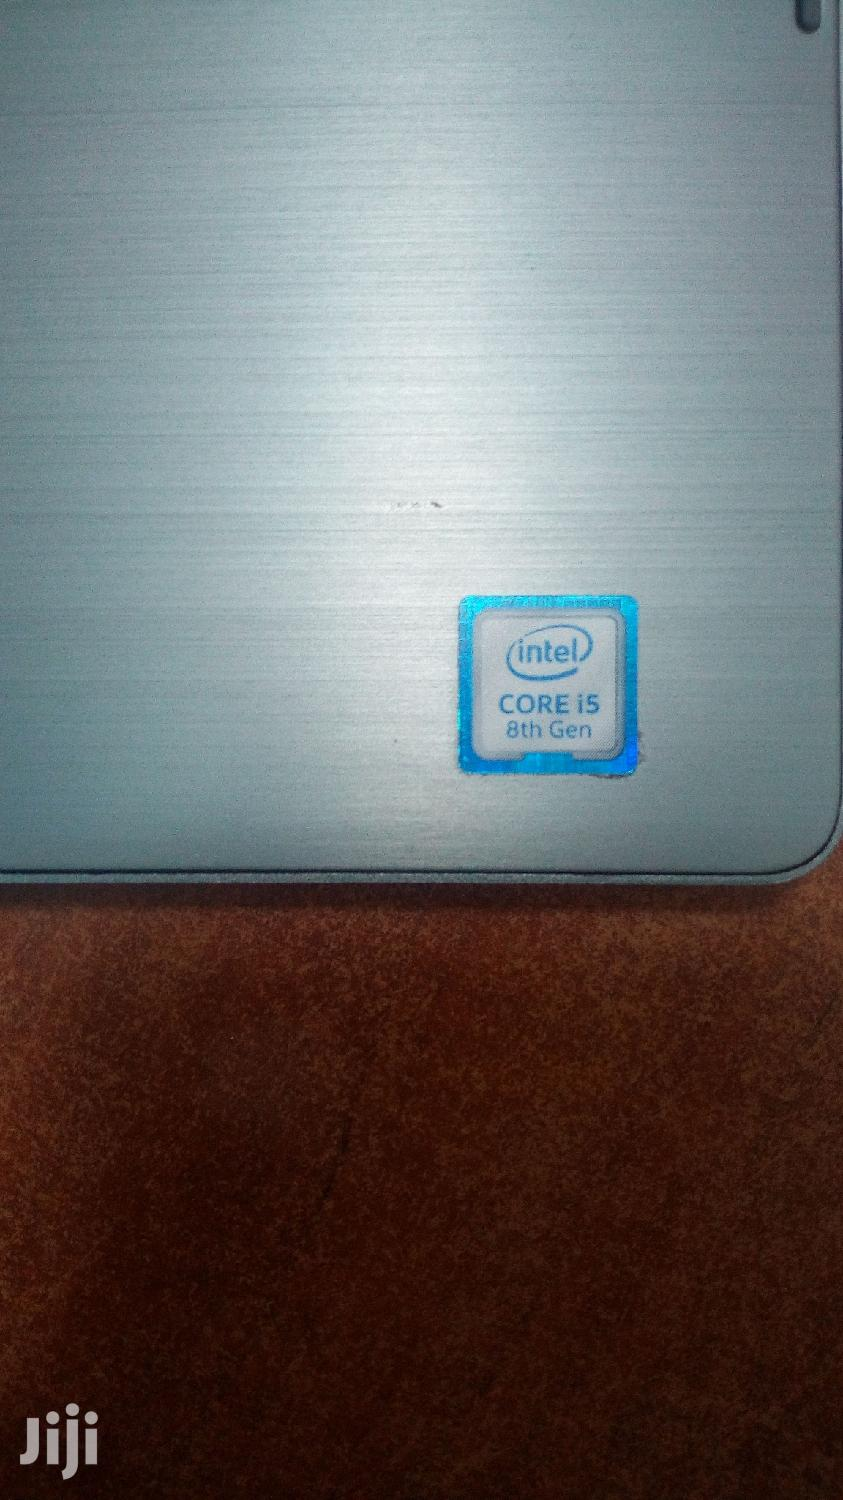 DELL INSPIRON 13 7000series 256 Hdd Core i5 8Gb Ram | Laptops & Computers for sale in Kampala, Central Region, Uganda